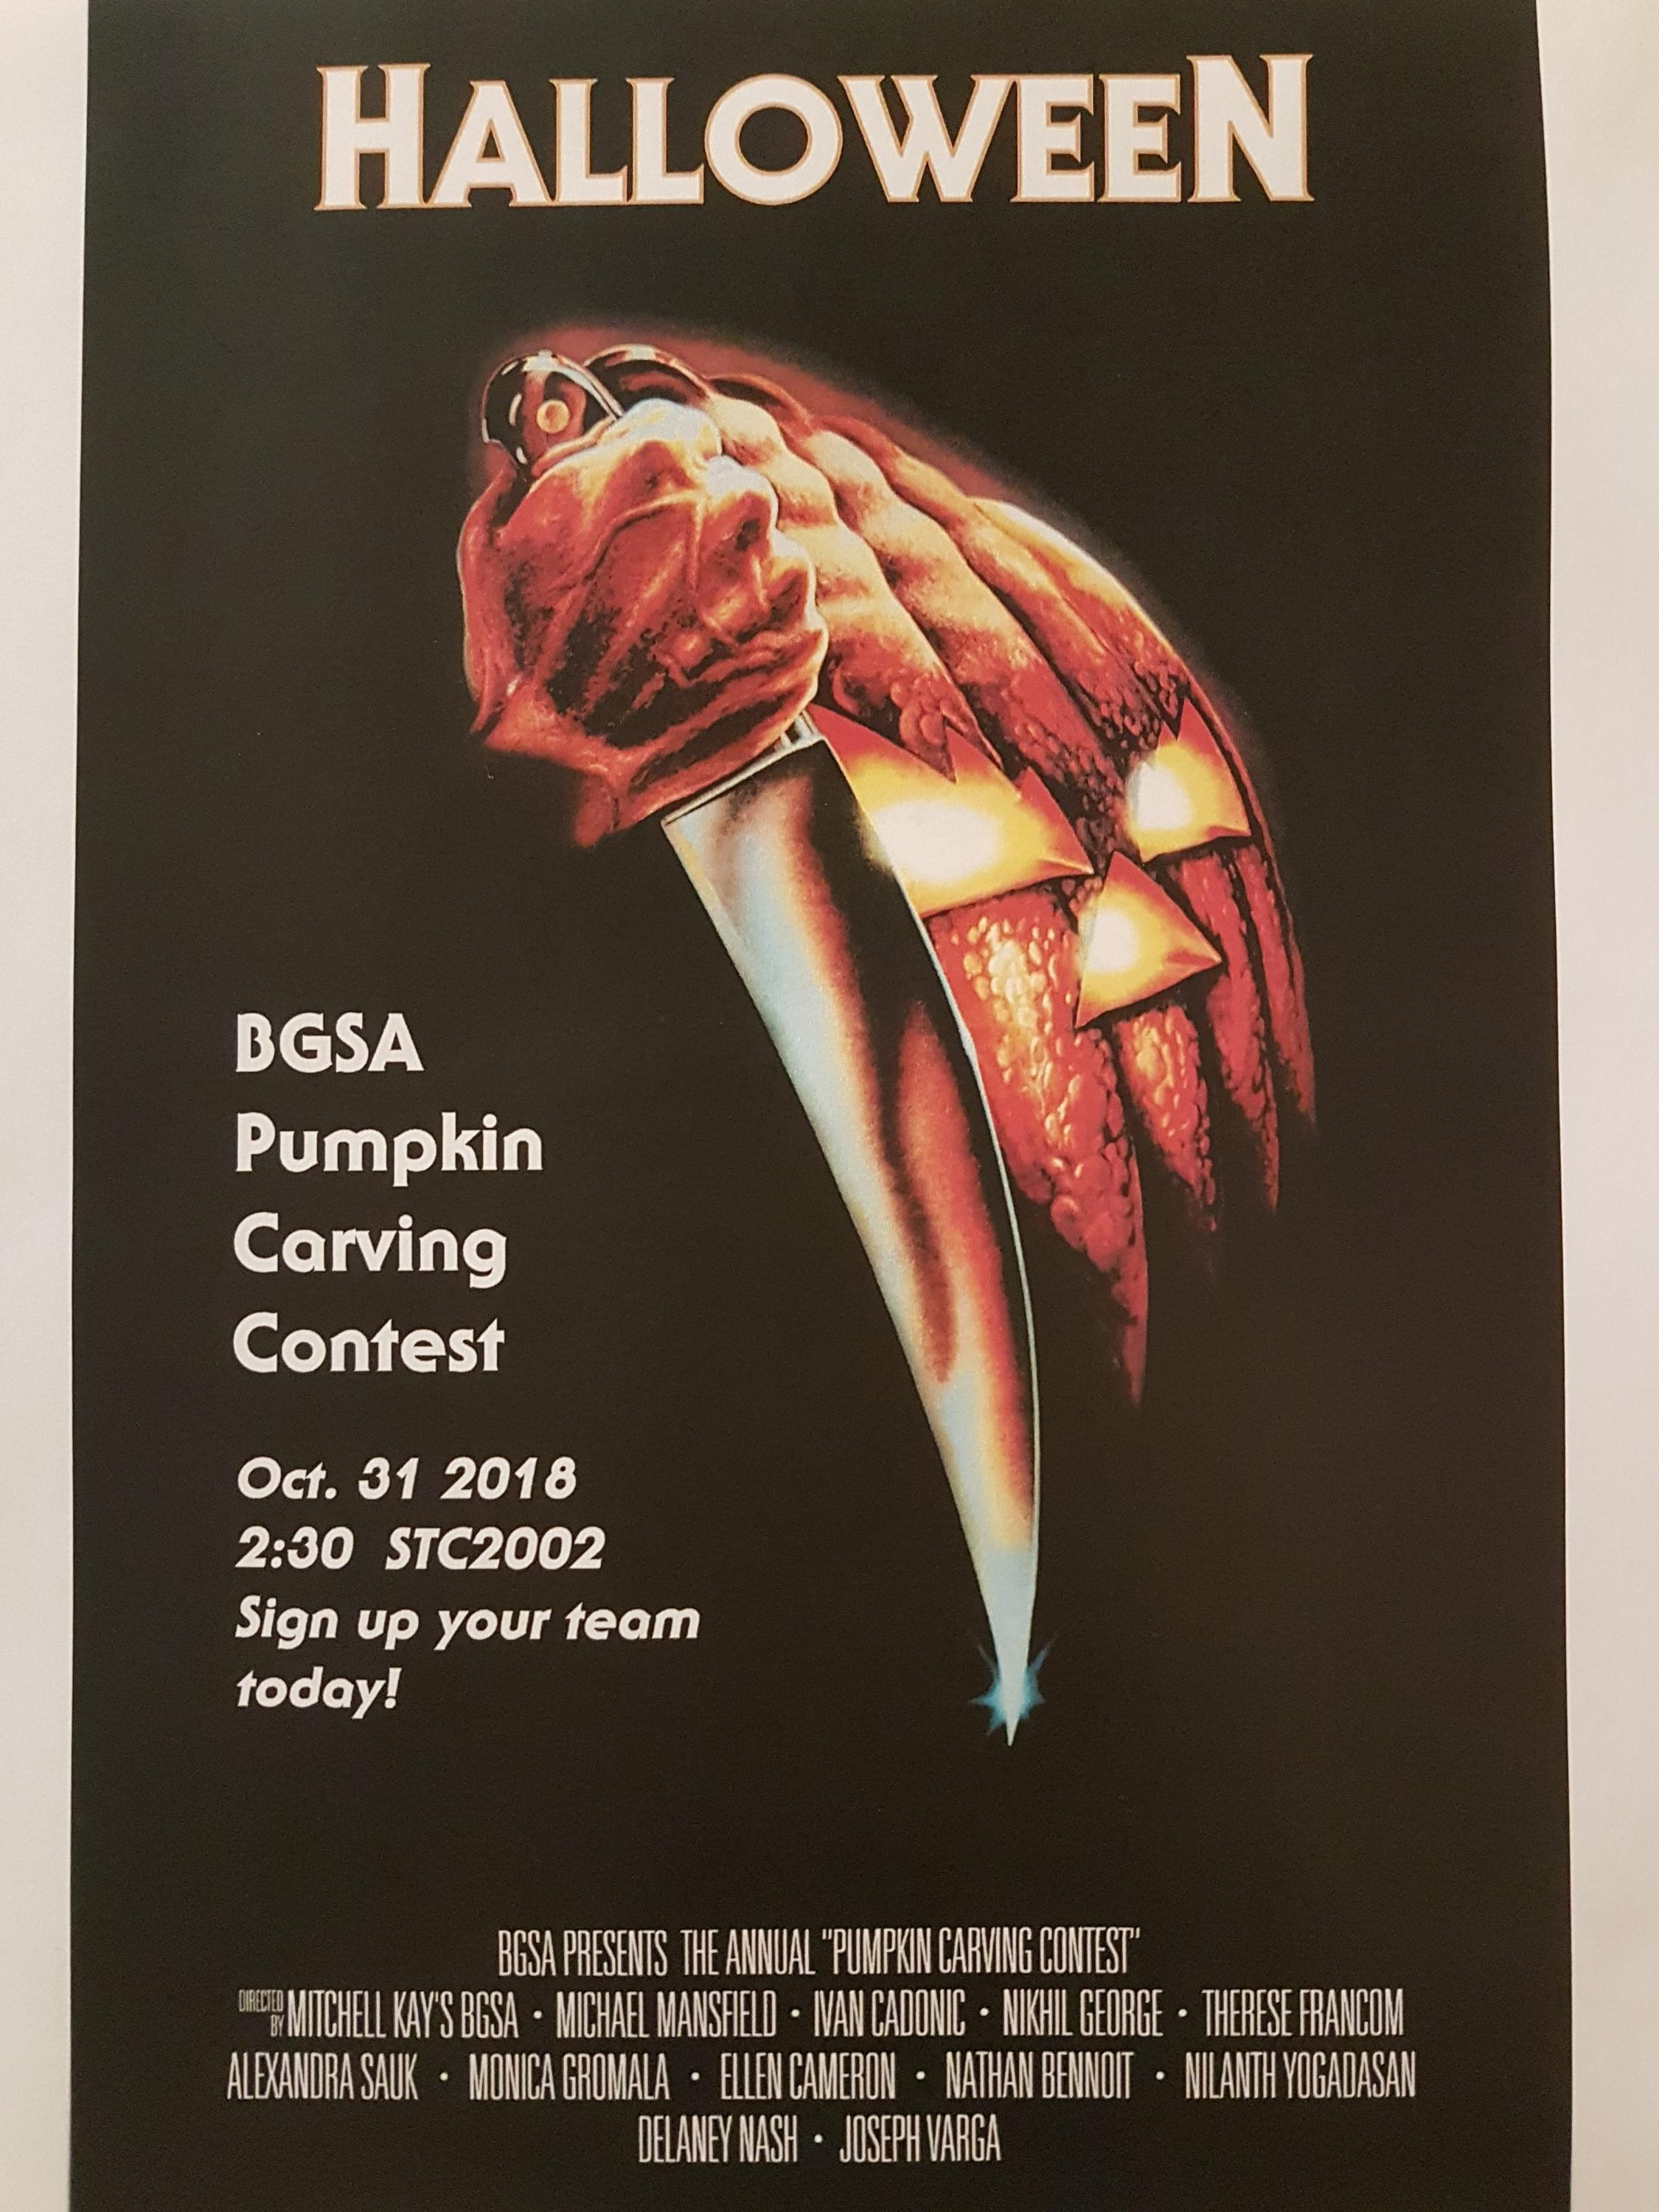 BGSA pumpkin carving poster